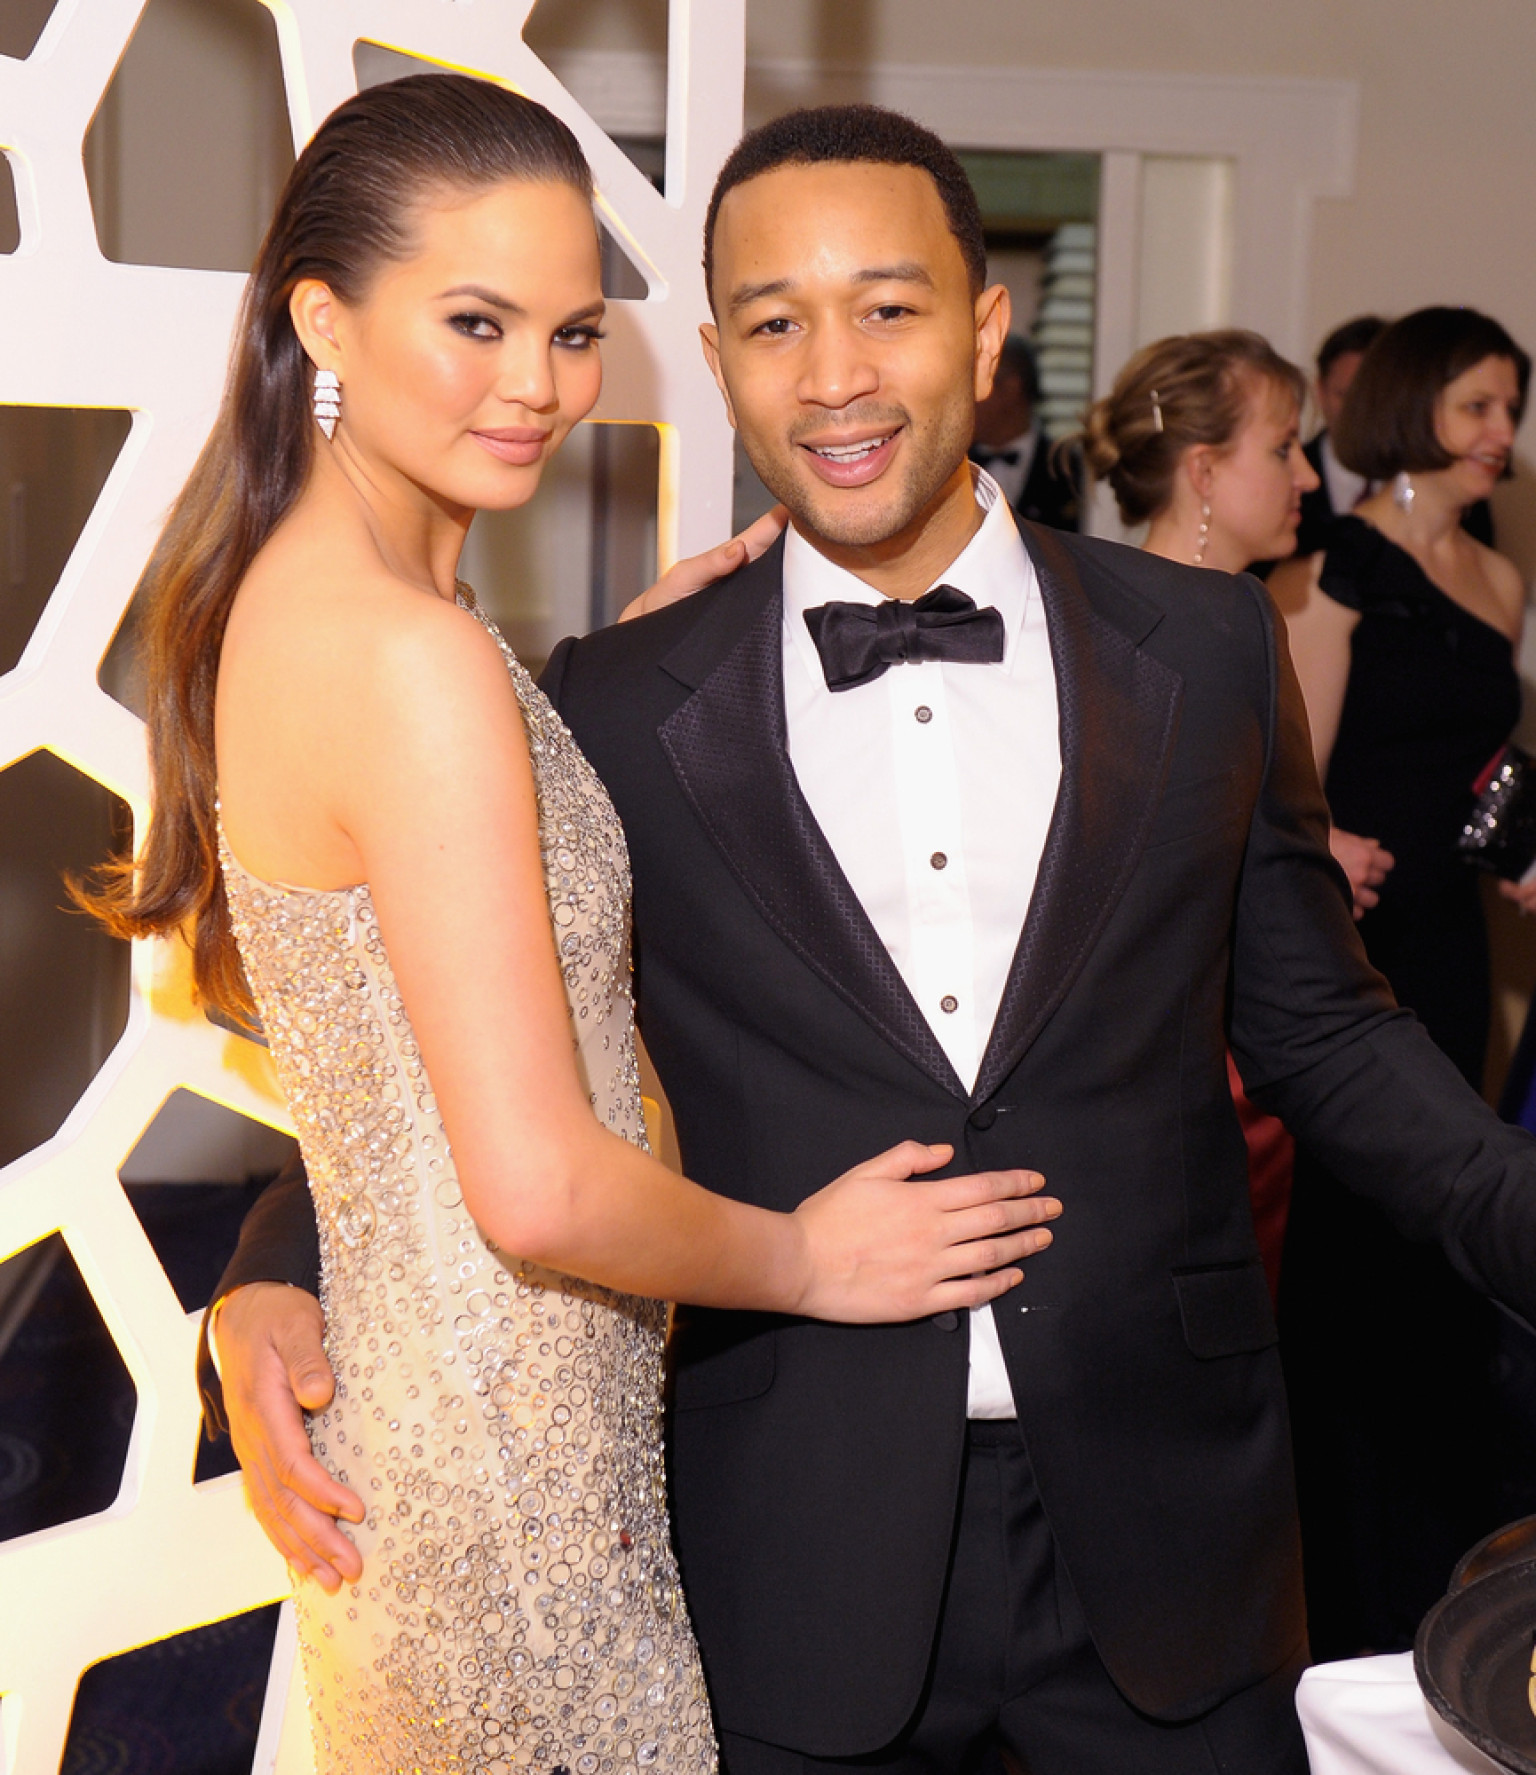 chrissy teigen and john legend dating osama